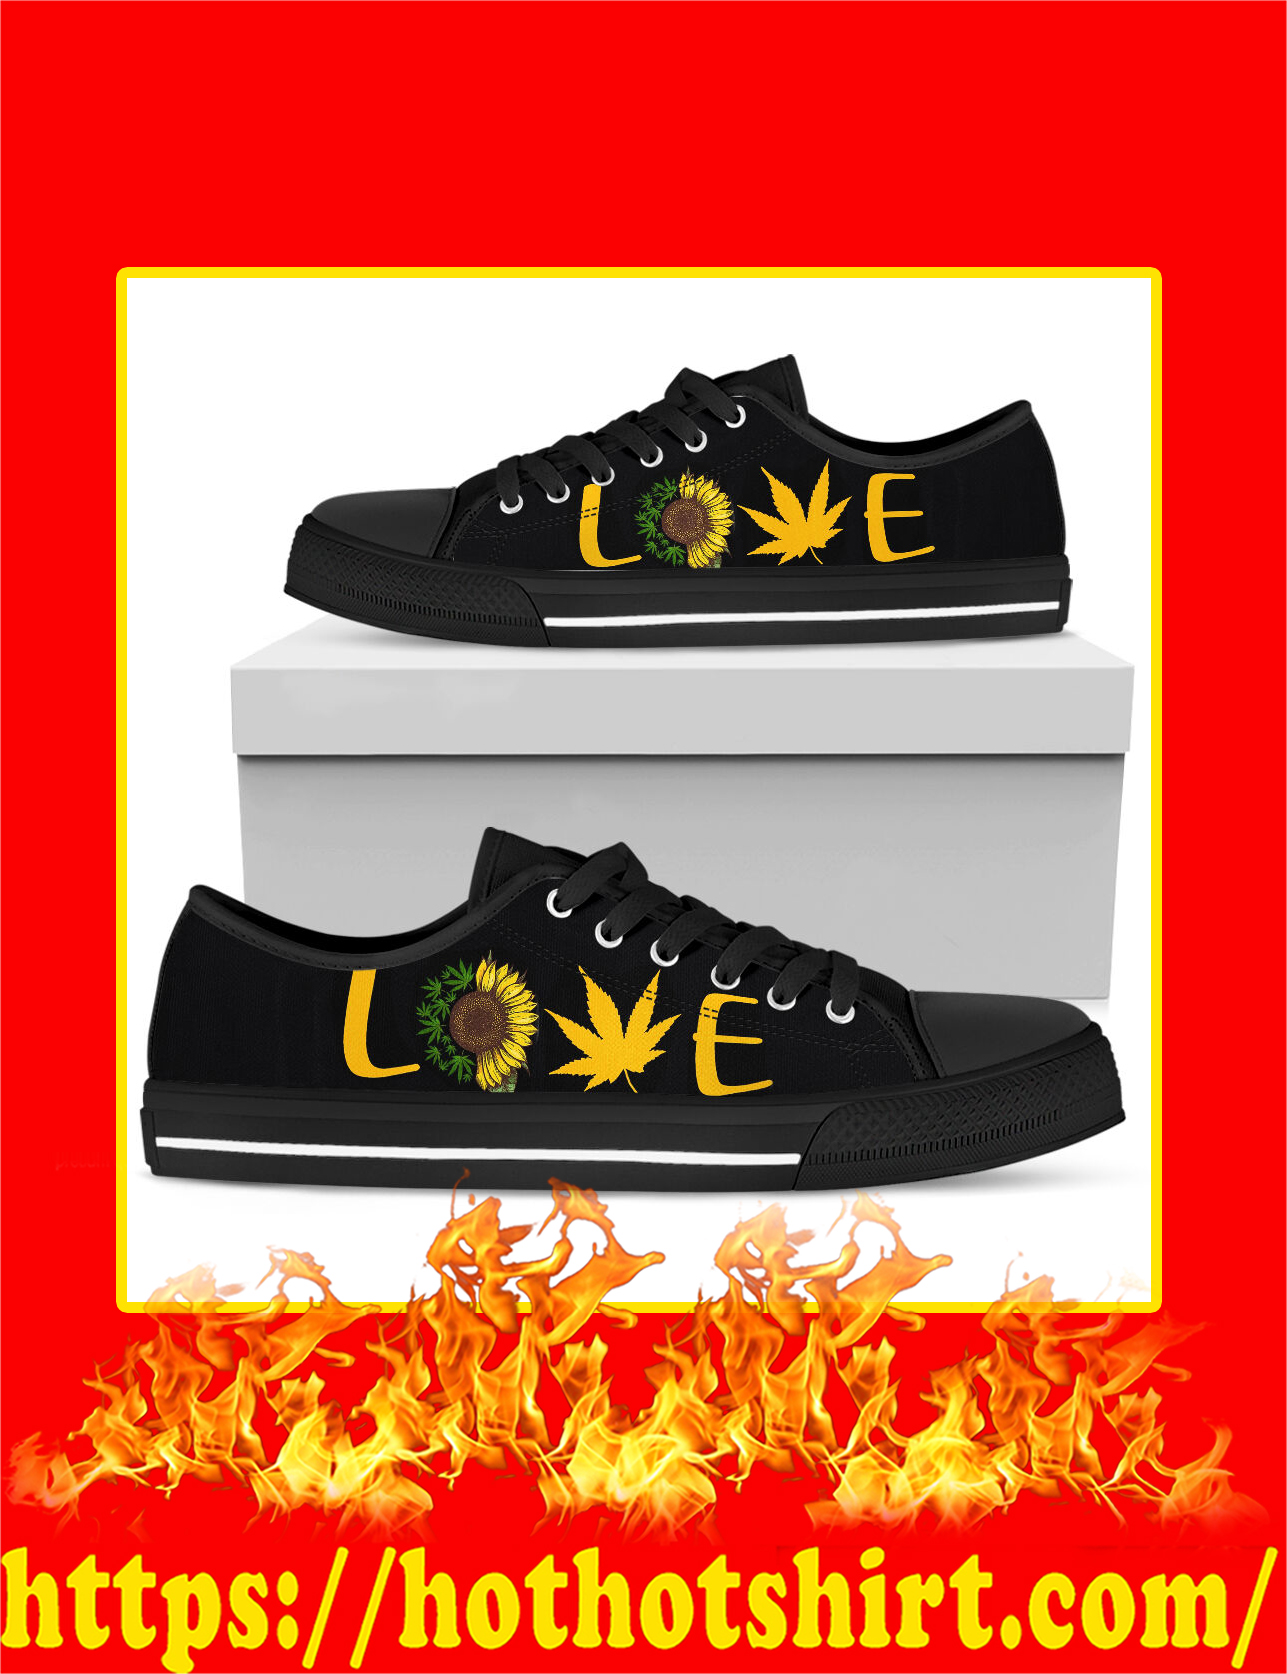 Love Cannabis Sunflower Low Top Shoes - Pic 2